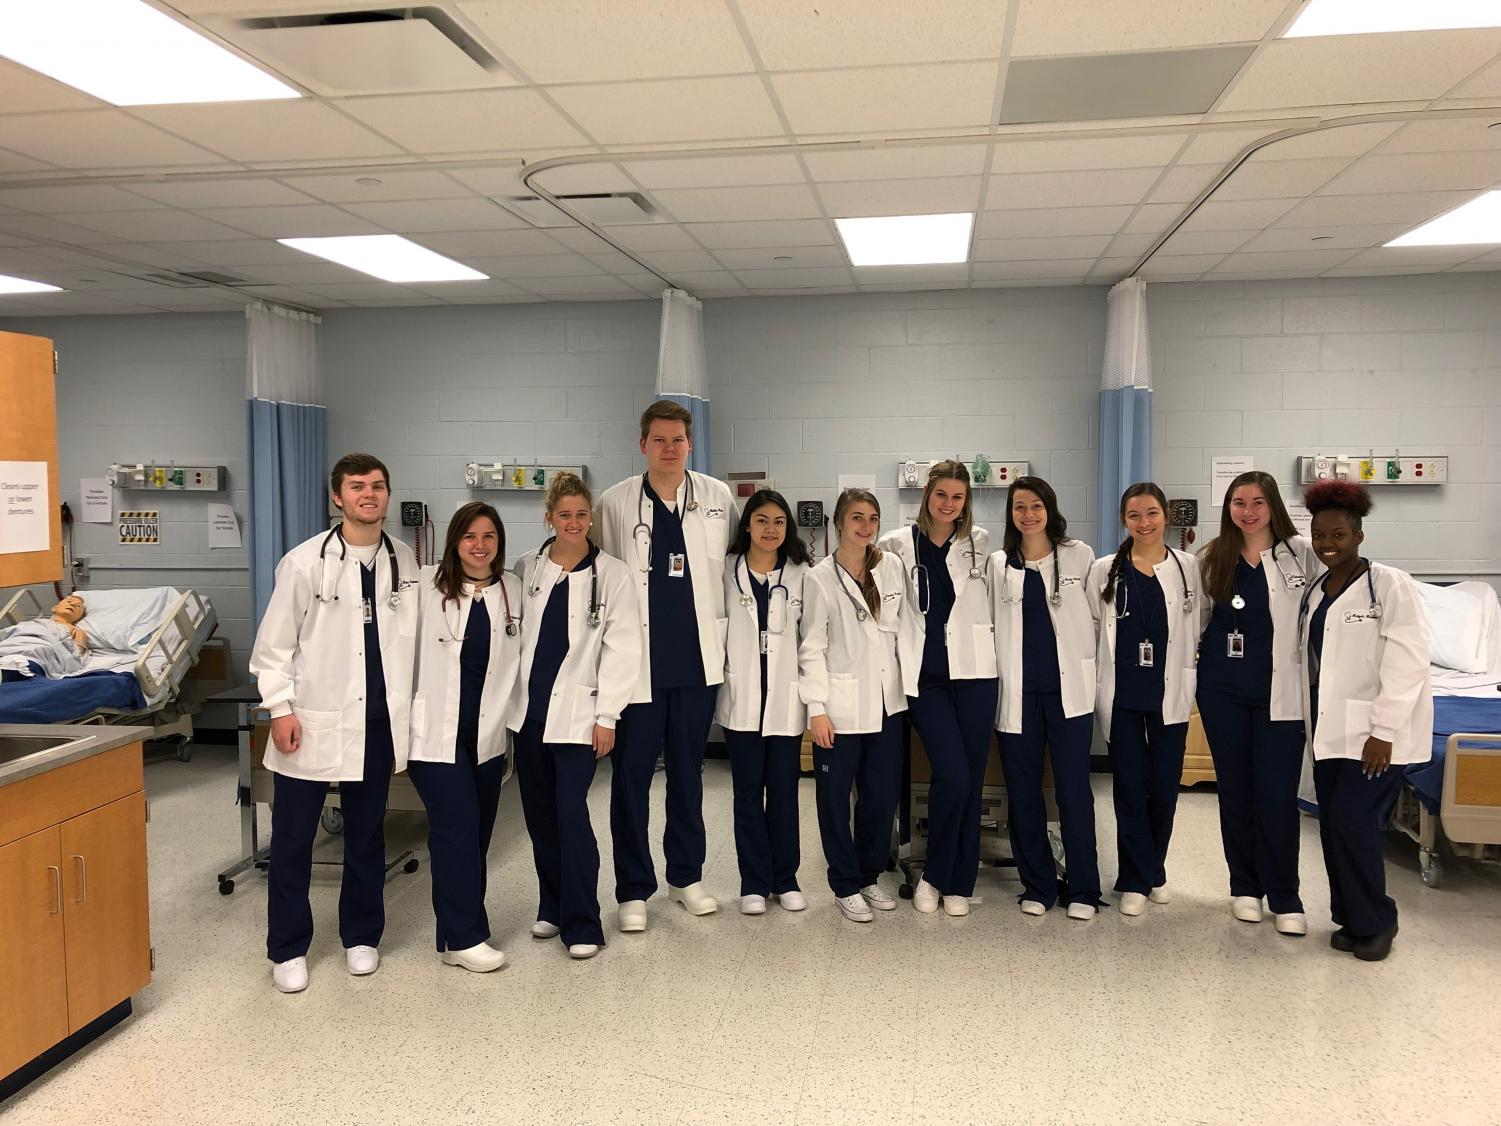 Health+Science+3+and+4+pose+in+their+new+lab+coats.